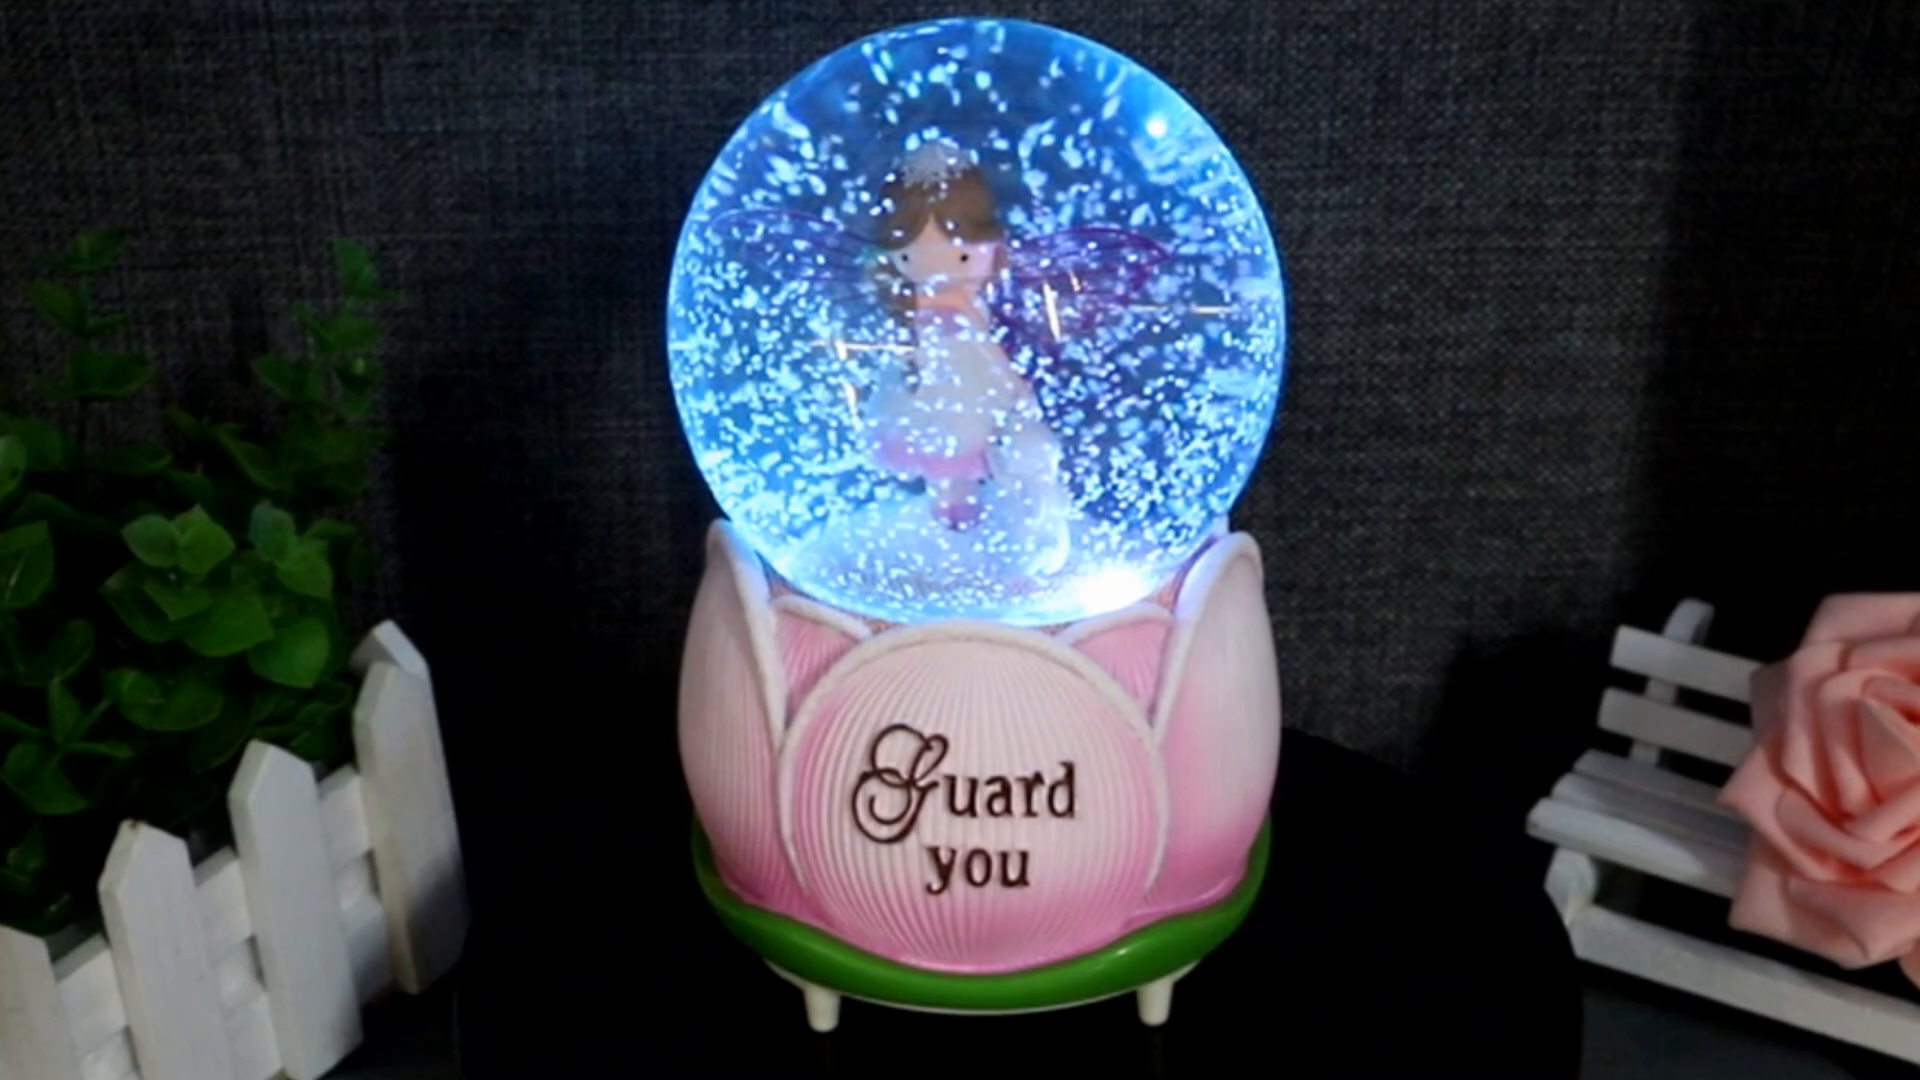 LED TRANSPARENT MERRY-GO-AROUND WIND UP MUSIC BOX MOON RIVER